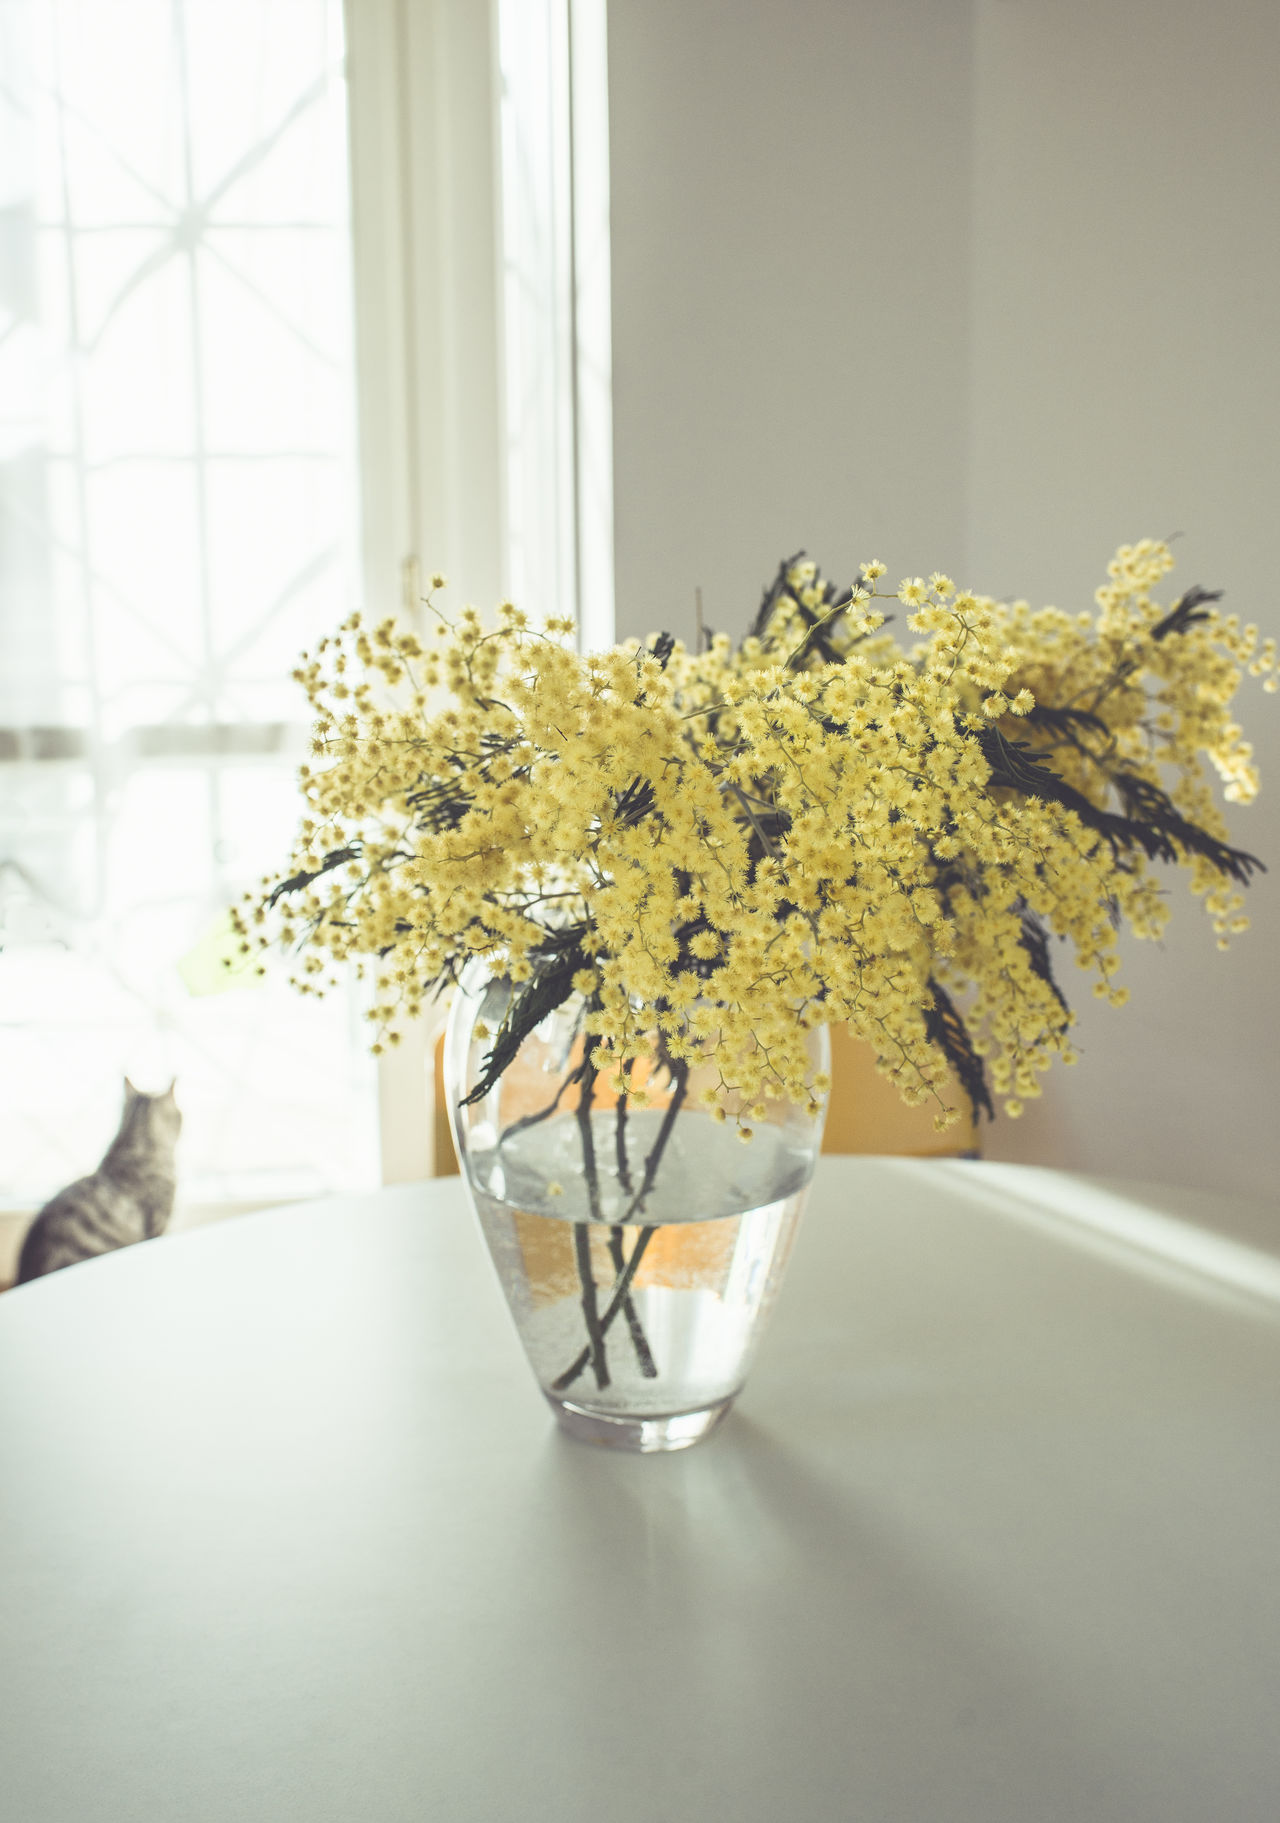 My kitchen & my cat Bouquet Cat Day Flower Flower Arrangement Freshness Glass Glass Vases Indoors  Interior International Women's Day Kitchen Mimosa Minimalism Natural Light No People Table Vase White Window Women's Day Yellow Yellow Flower